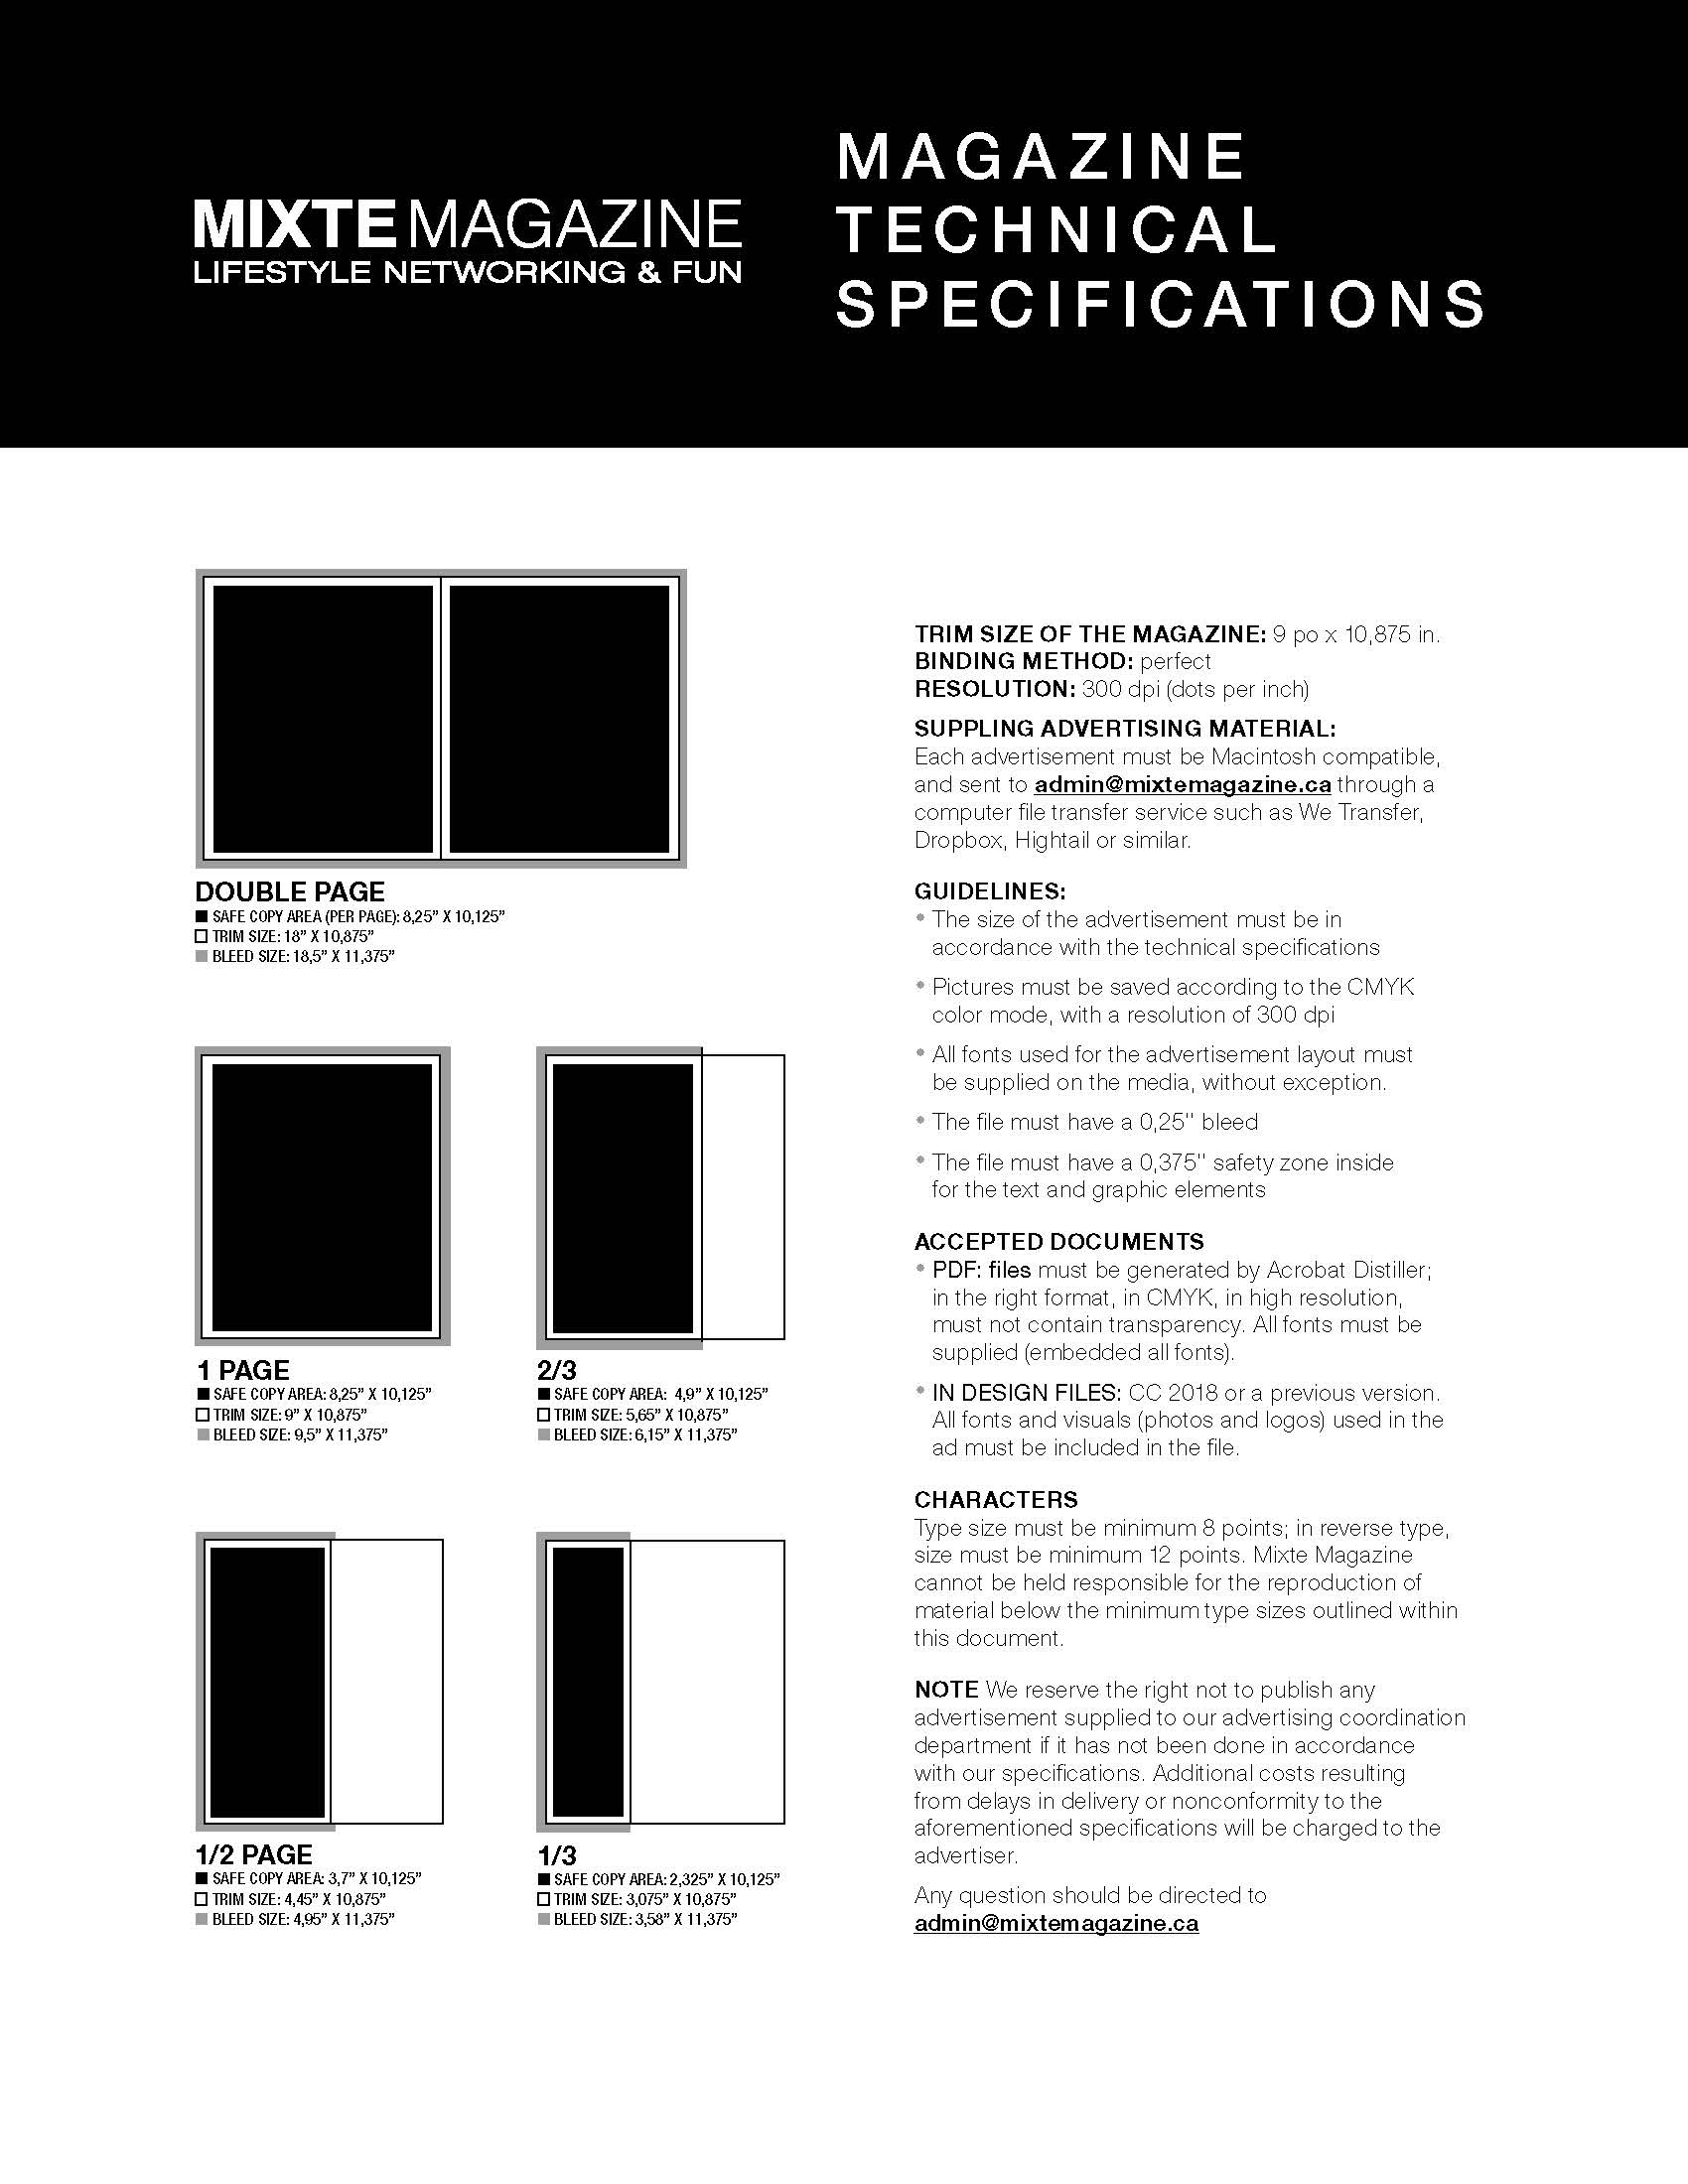 Magazine Technical Specifications